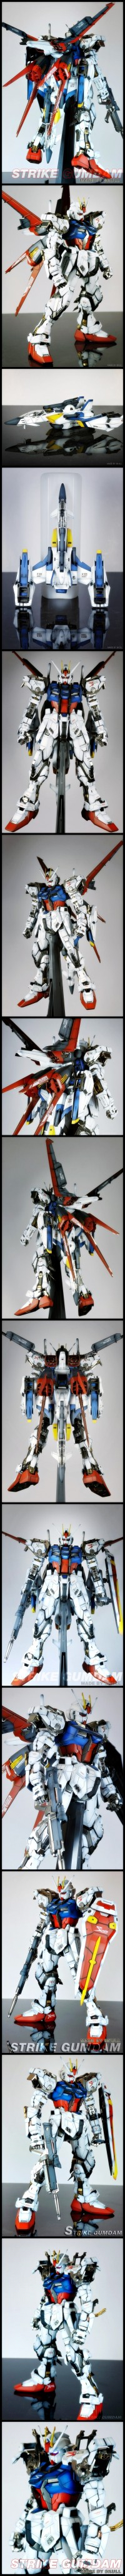 STRIKE GUNDAM | The Plastic Figure World